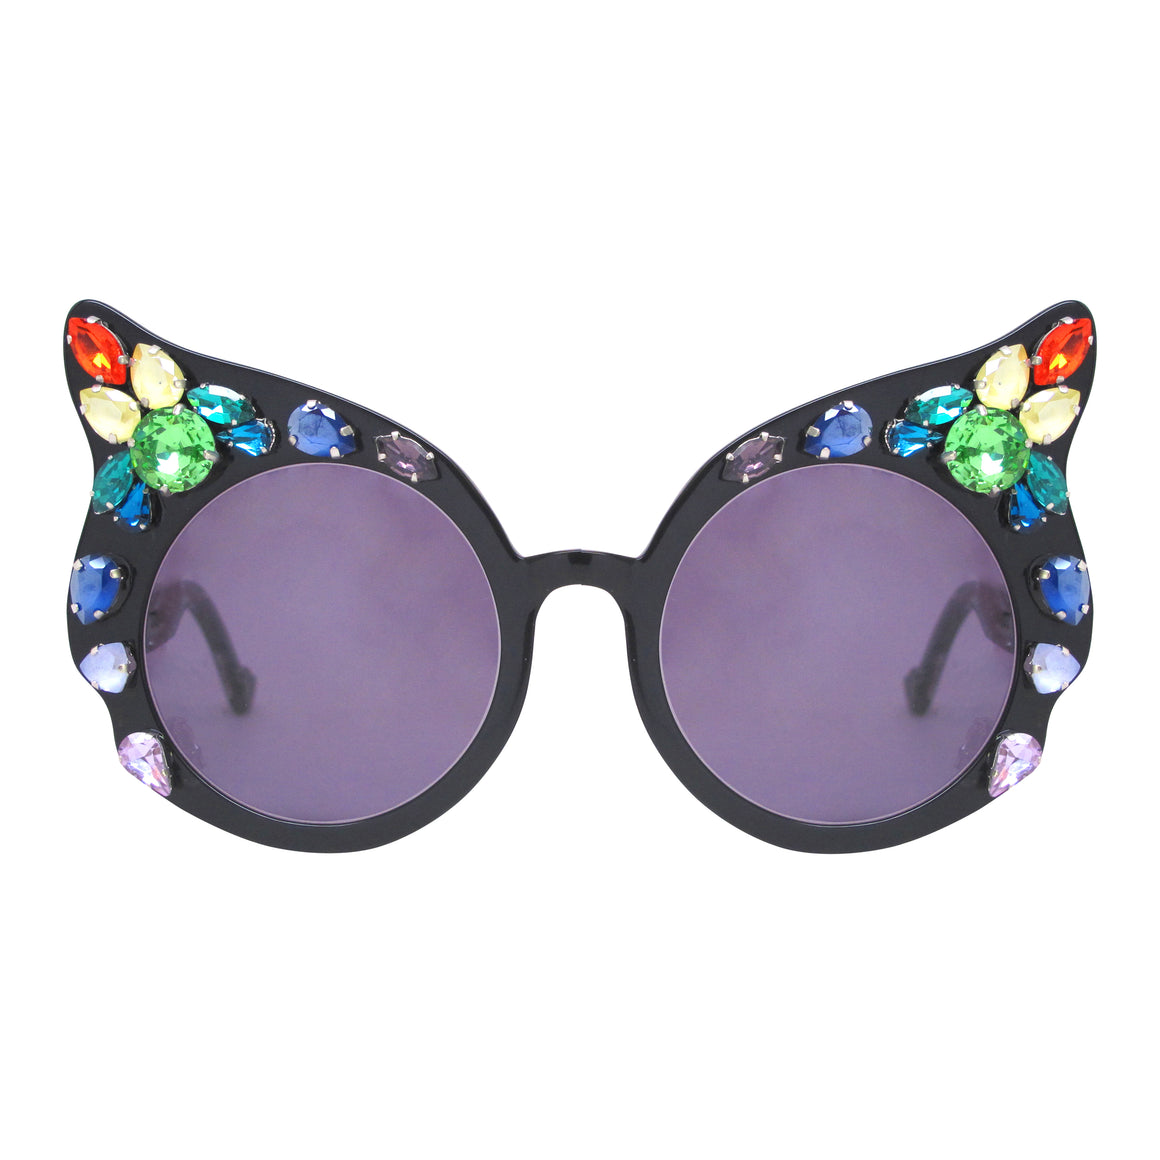 A-Morir Eyewear - Carol Black Rounded Cat Eye With Rainbow Gems